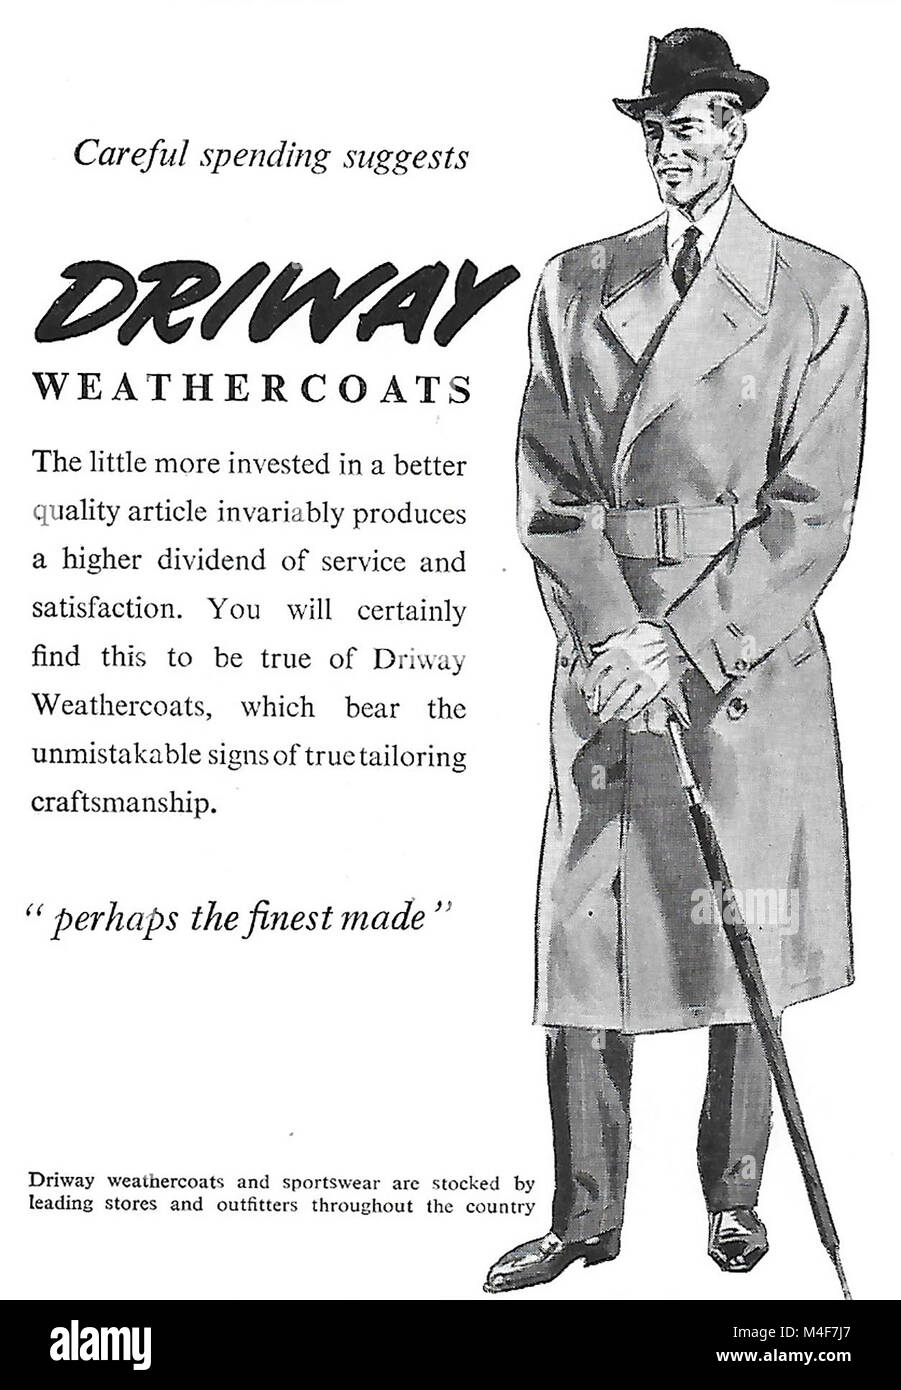 Driway weather coat overcoats coats advert, advertising in Country Life magazine UK 1951 - Stock Image